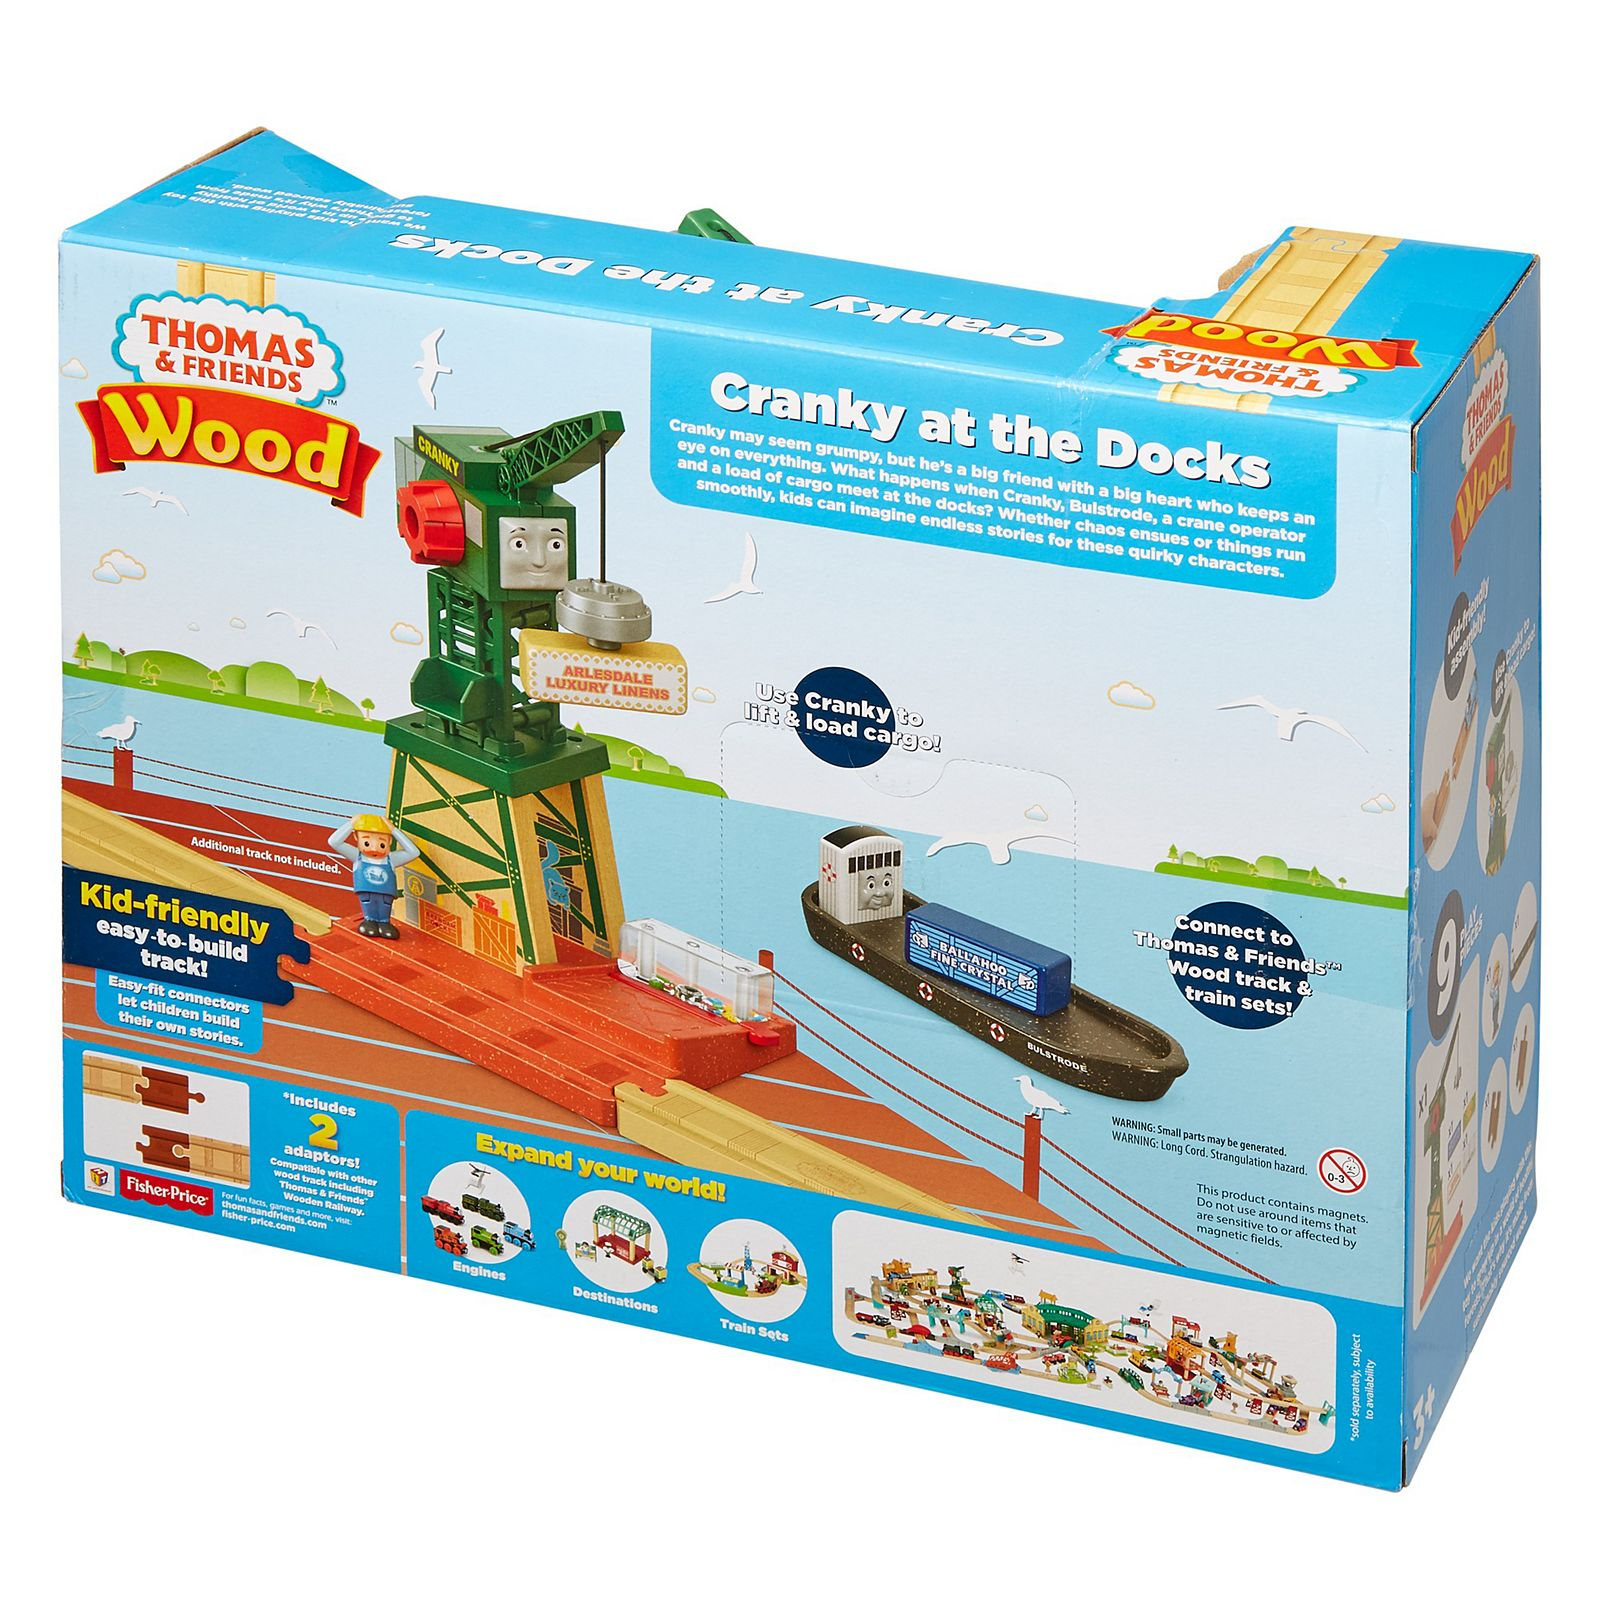 Fisher-Price® Thomas & Friends™ Wood Cranky at the Docks